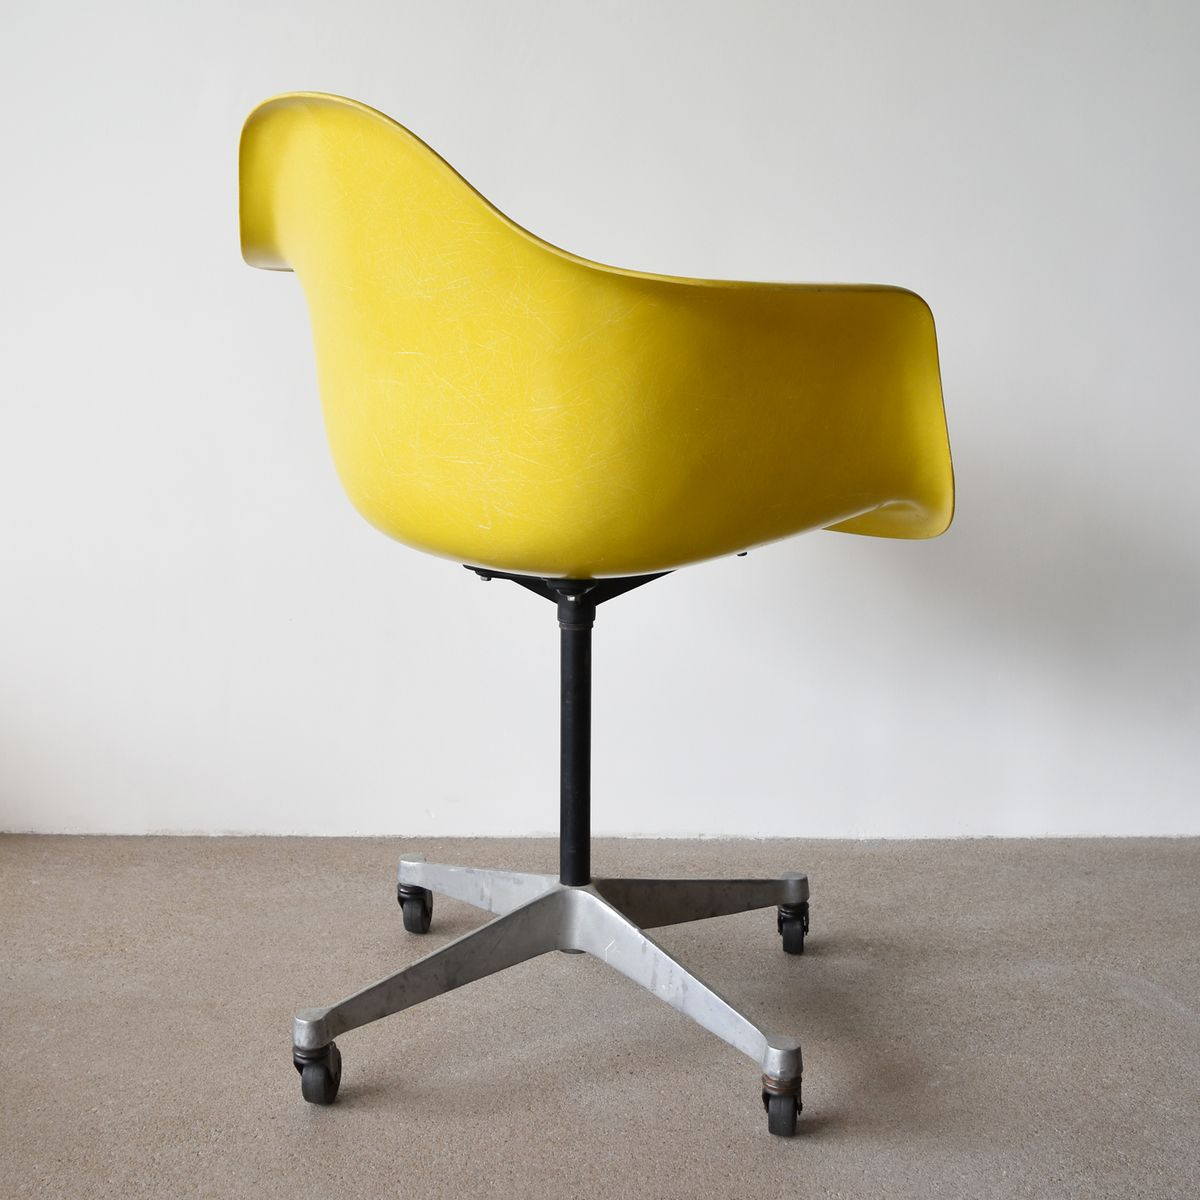 vintage pac chair in yellow by charles and ray eames for herman miller